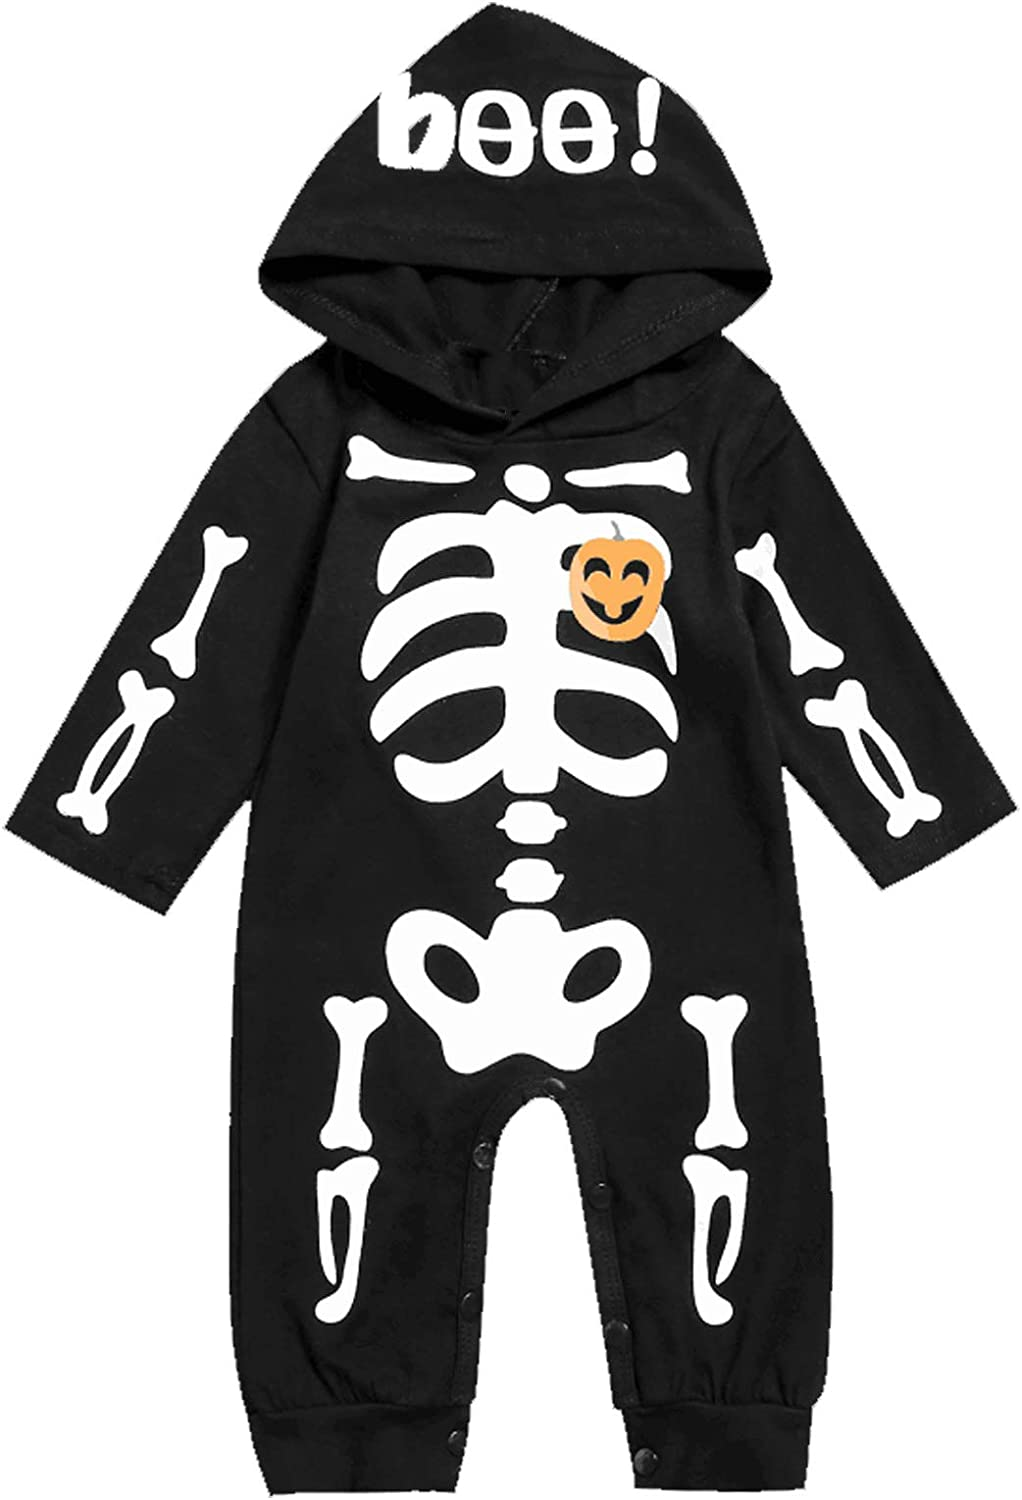 Singcoco Baby Boy Girl 55% OFF Halloween Skeleton Sale price Costume Outfit Newborn